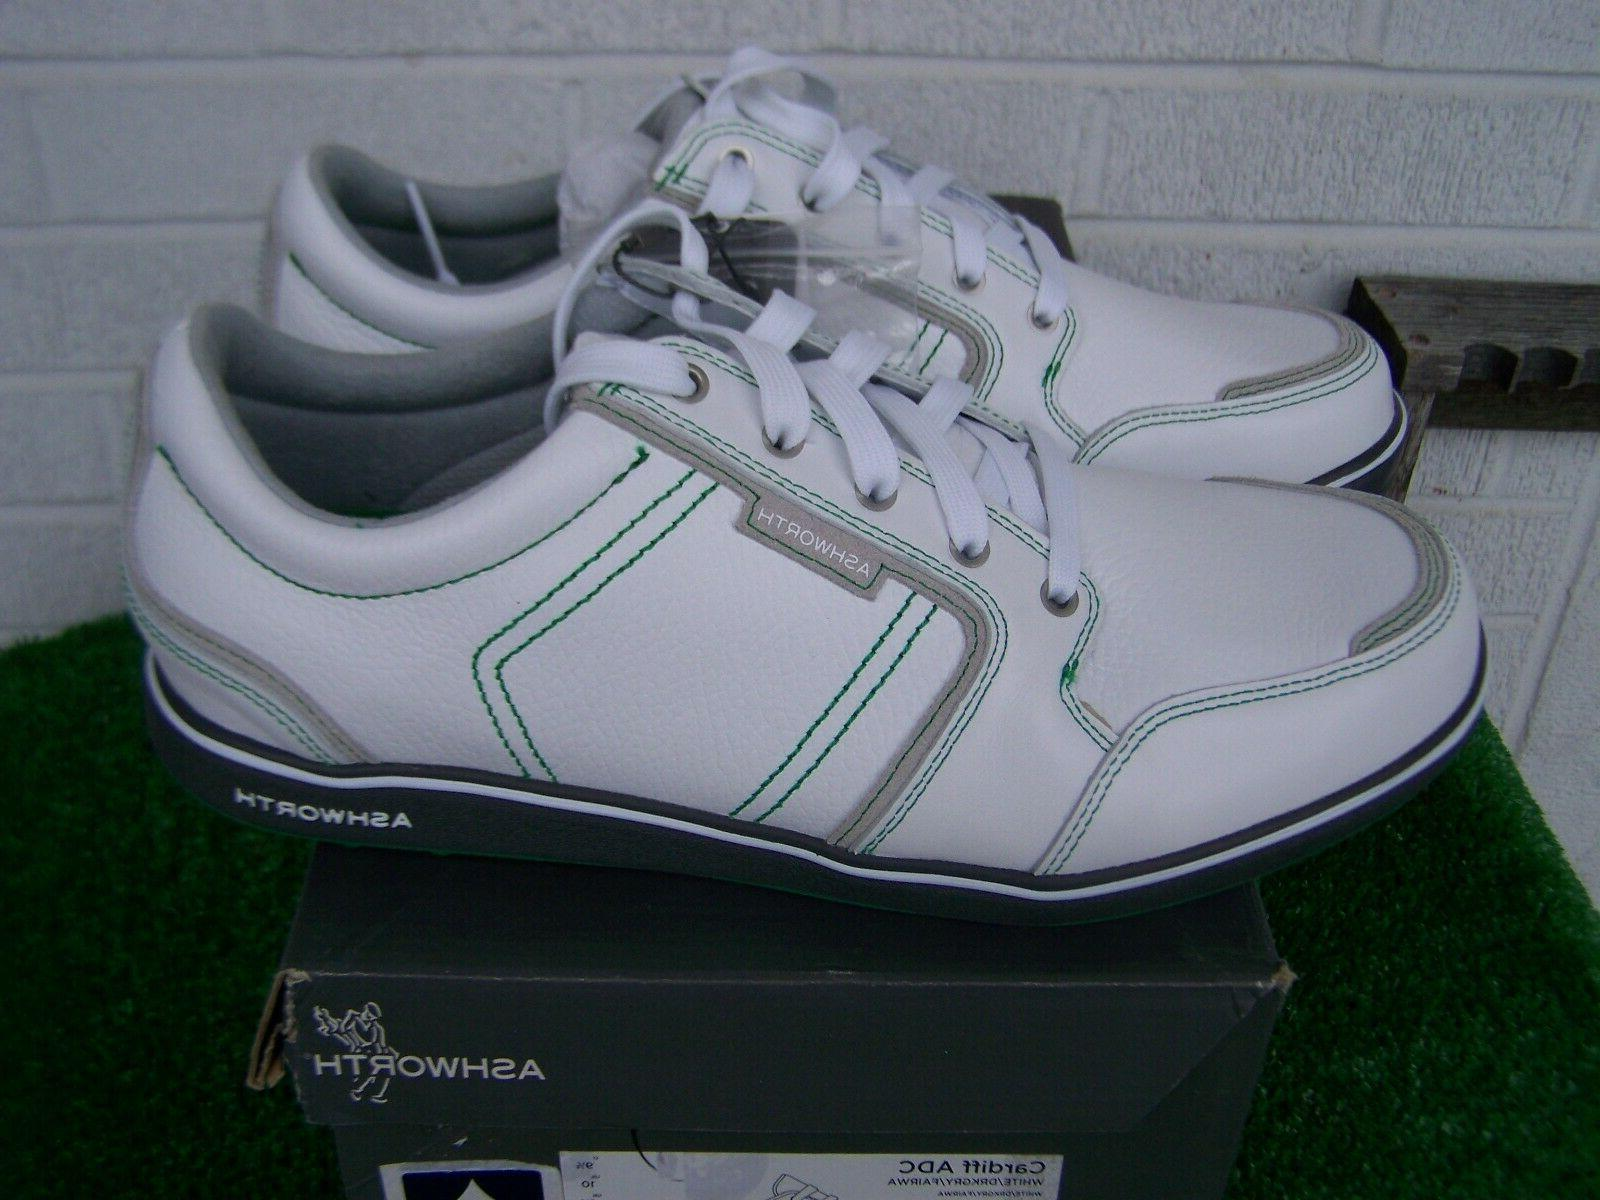 Ashworth White & Green Shoes US Size 10 Medium NEW